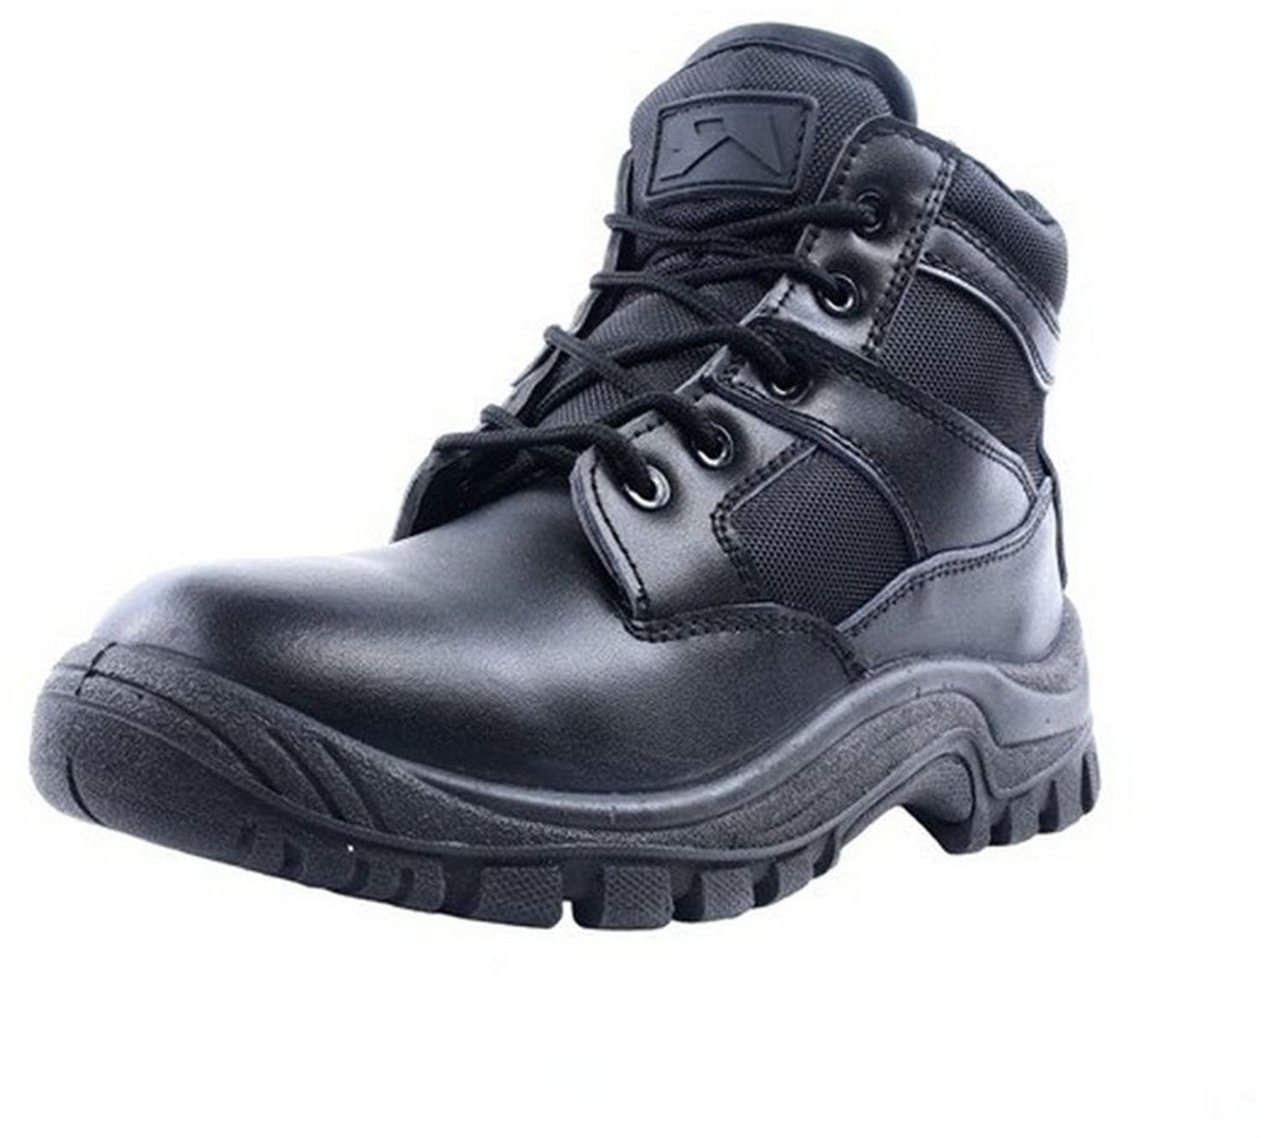 Ridge-Outdoors-Nighthawk-Black-Shoes-Multiple-Styles thumbnail 11